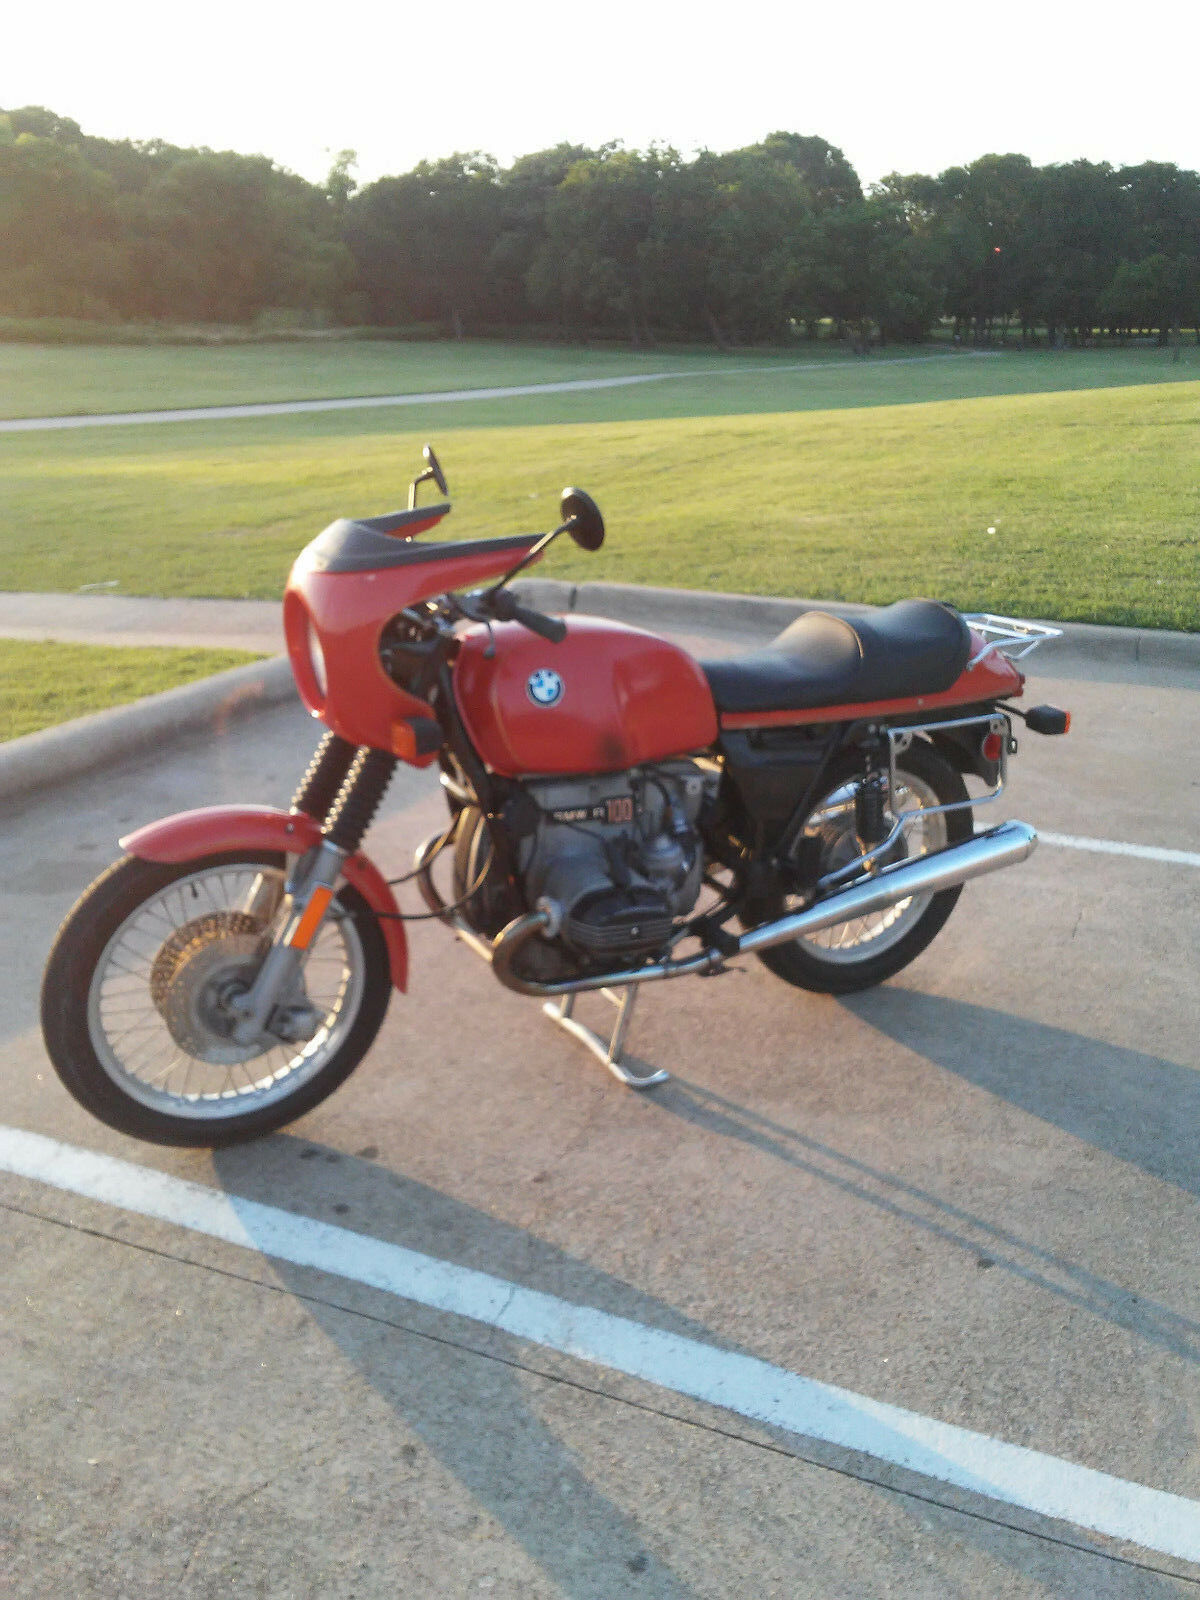 1977 BMW R-Series  BMW R100S 1977 Motorcycle Vintage Airhead Runs Great with Luggage and extra